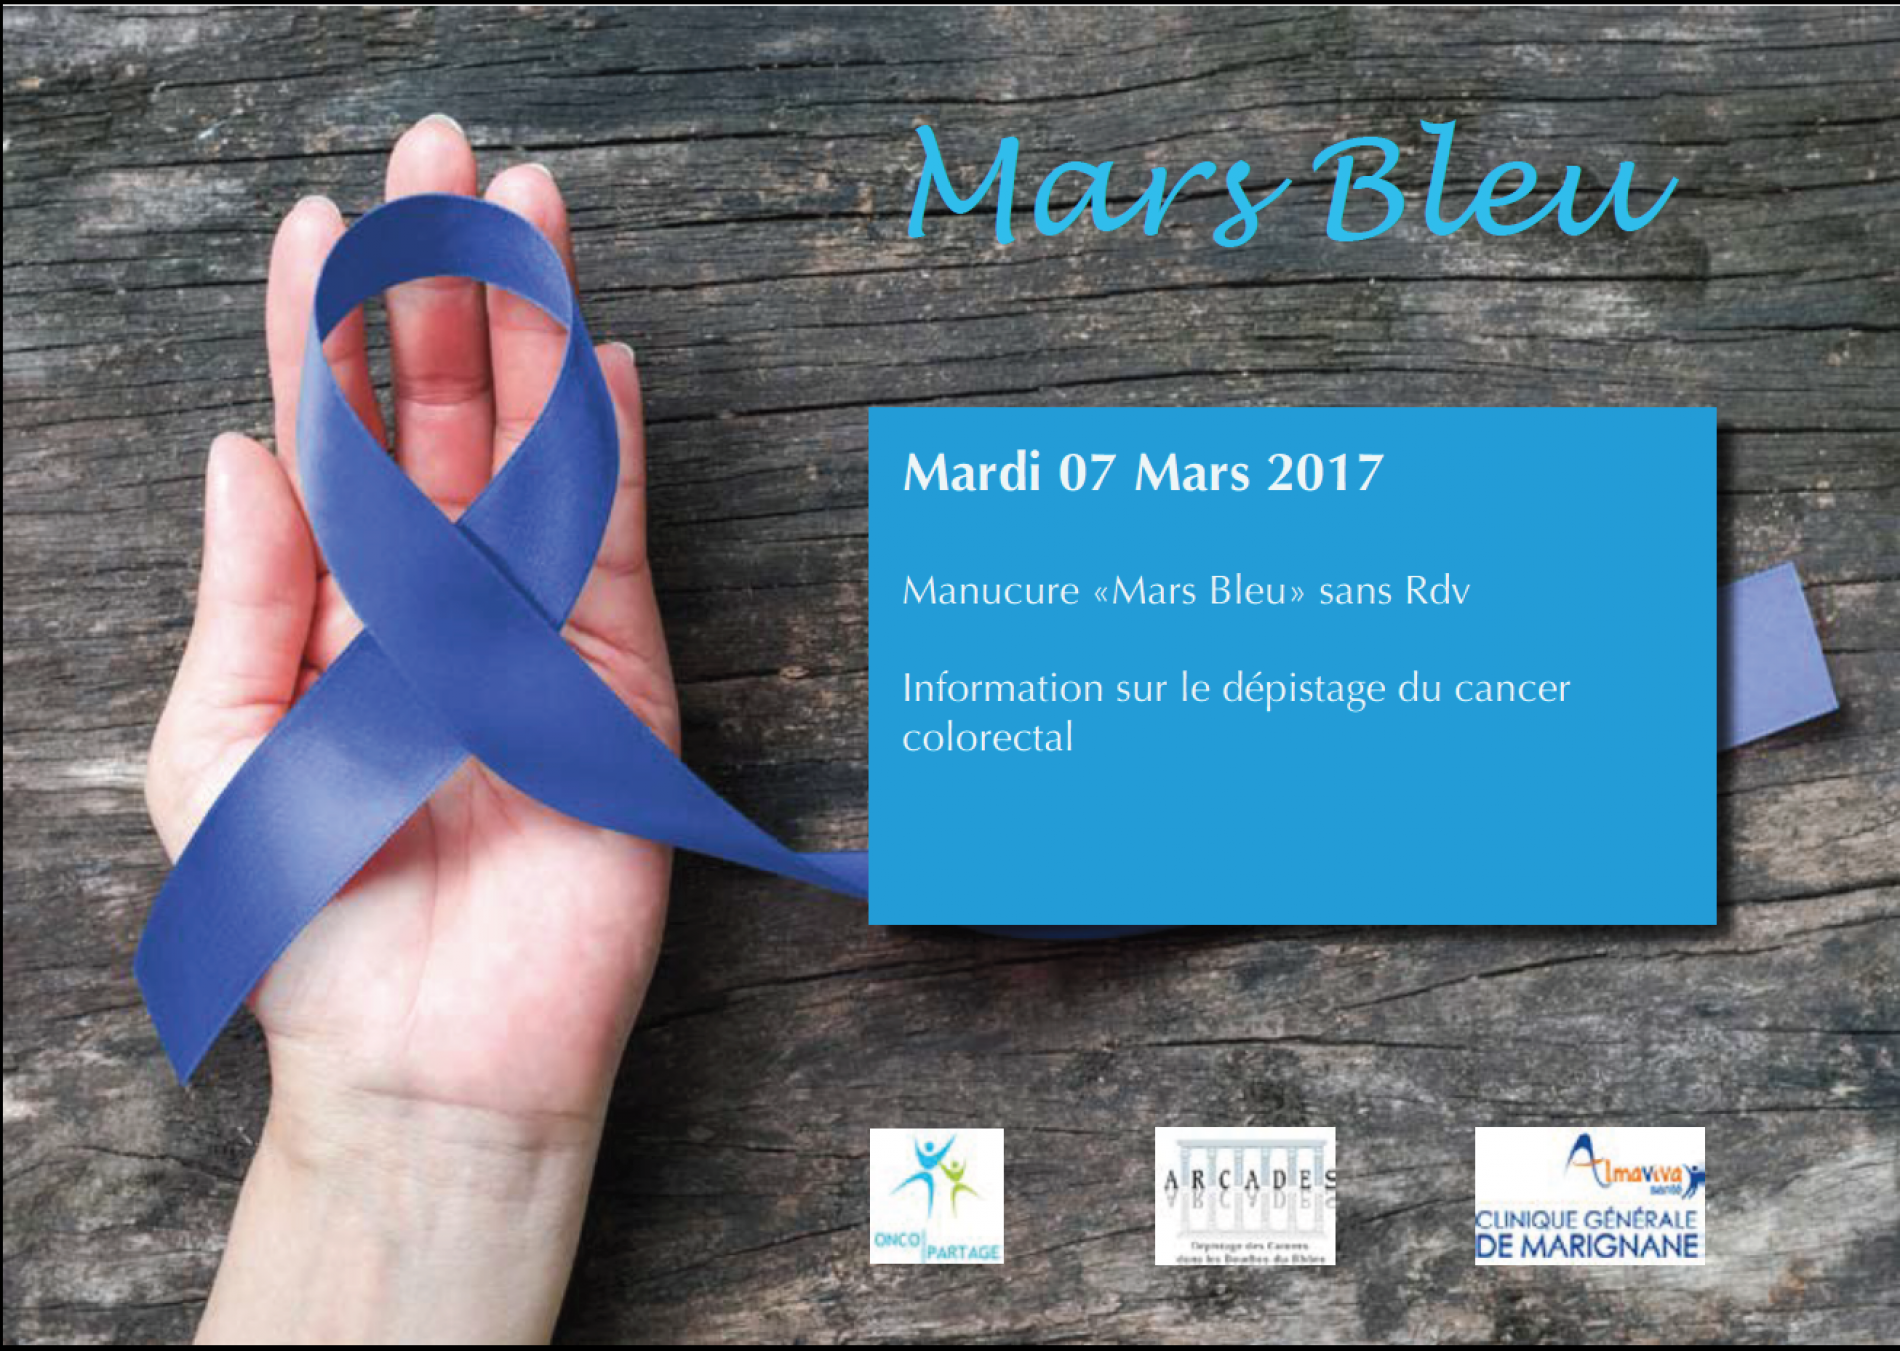 Mars Bleu - Dépistage du cancer colorectal